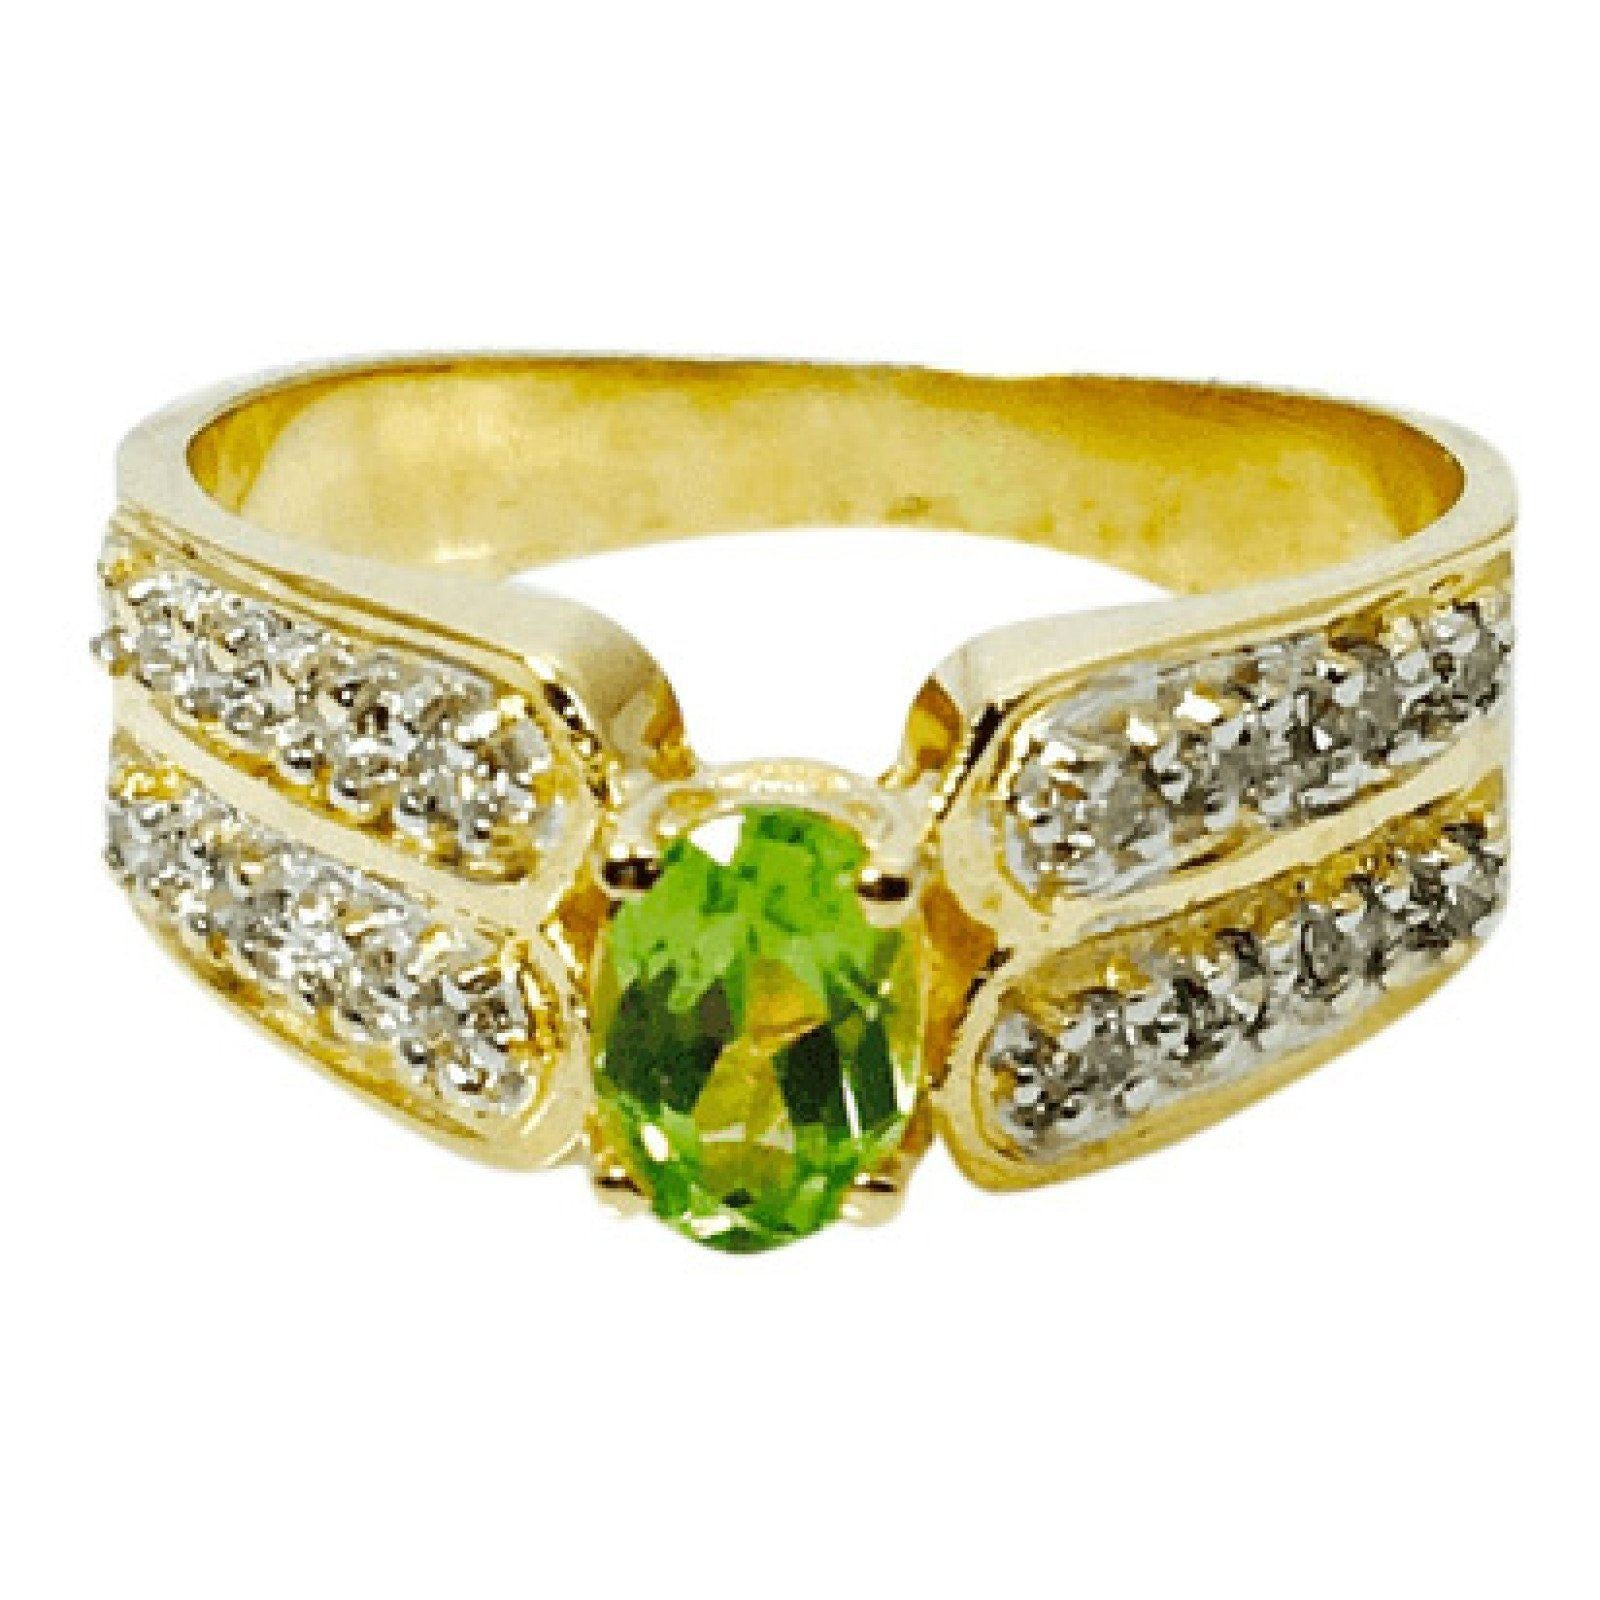 0a7a7abf315e0 Hand Assembled Peridot and Diamond Cocktail Ring in 14kt Yellow Gold